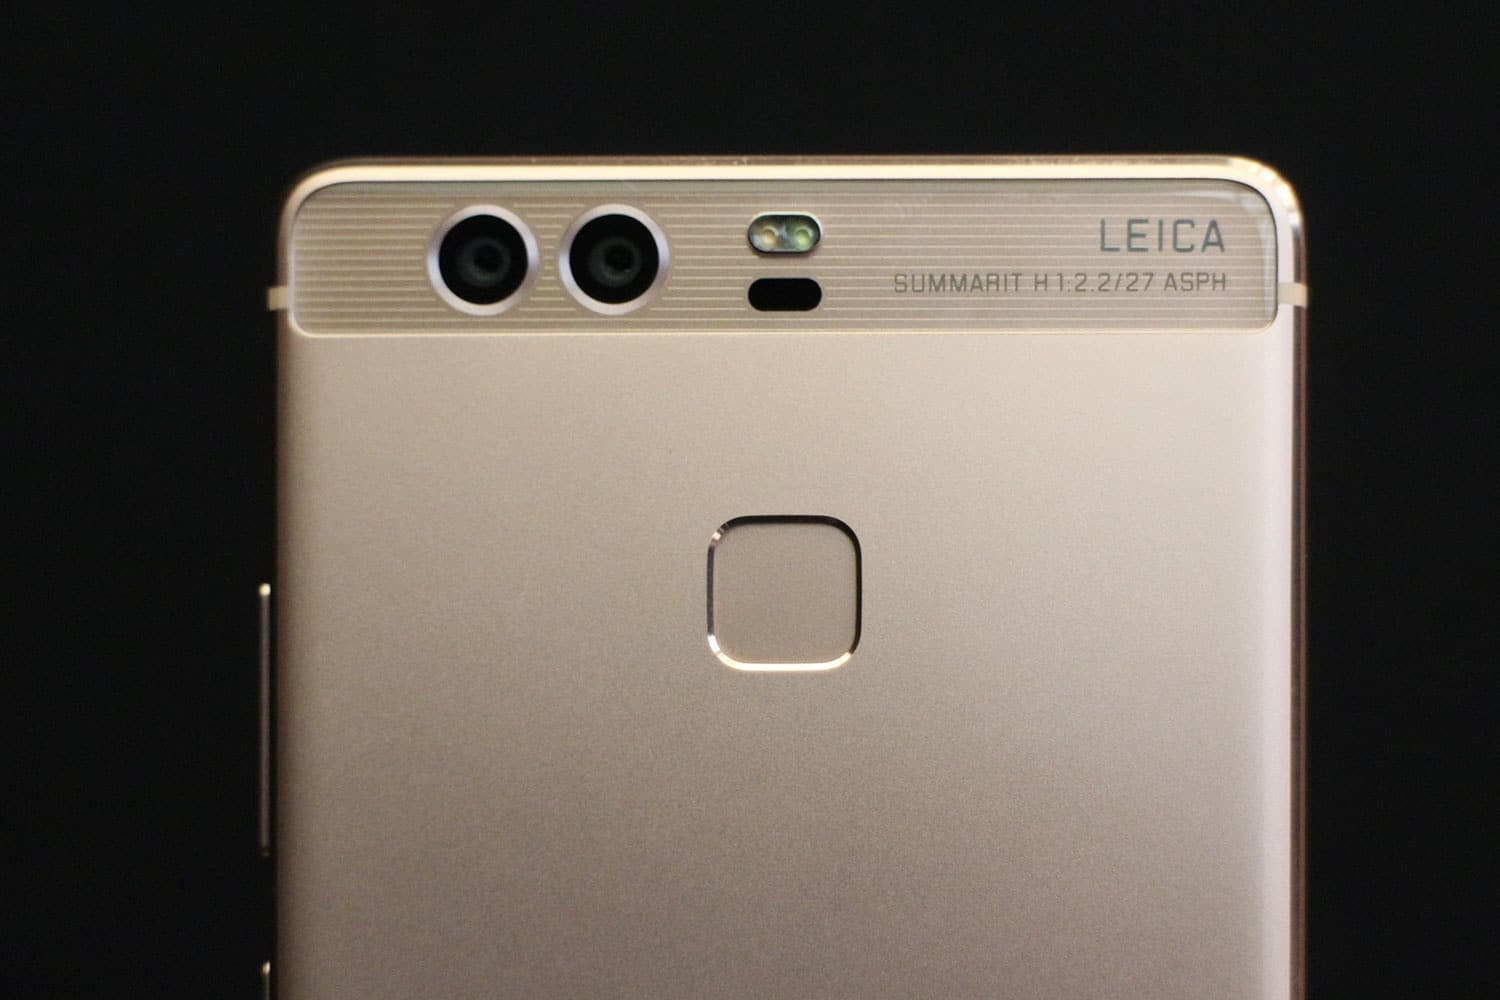 Huawei P9 features